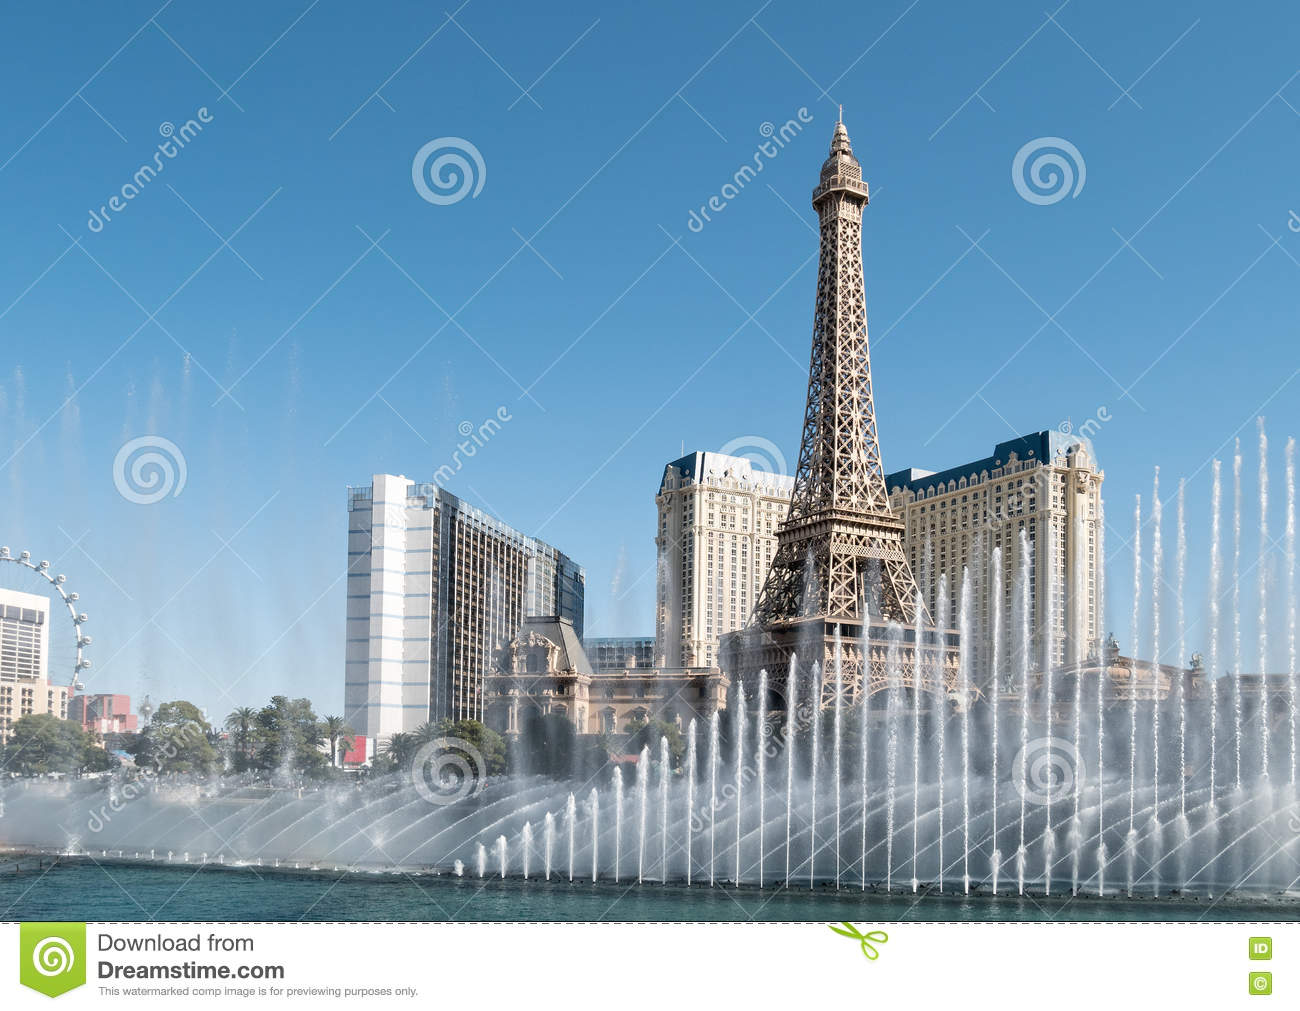 Download Eiffel Tower, Fountains Of Bellagio Stock Image - Image of glitzy, building: 81296767